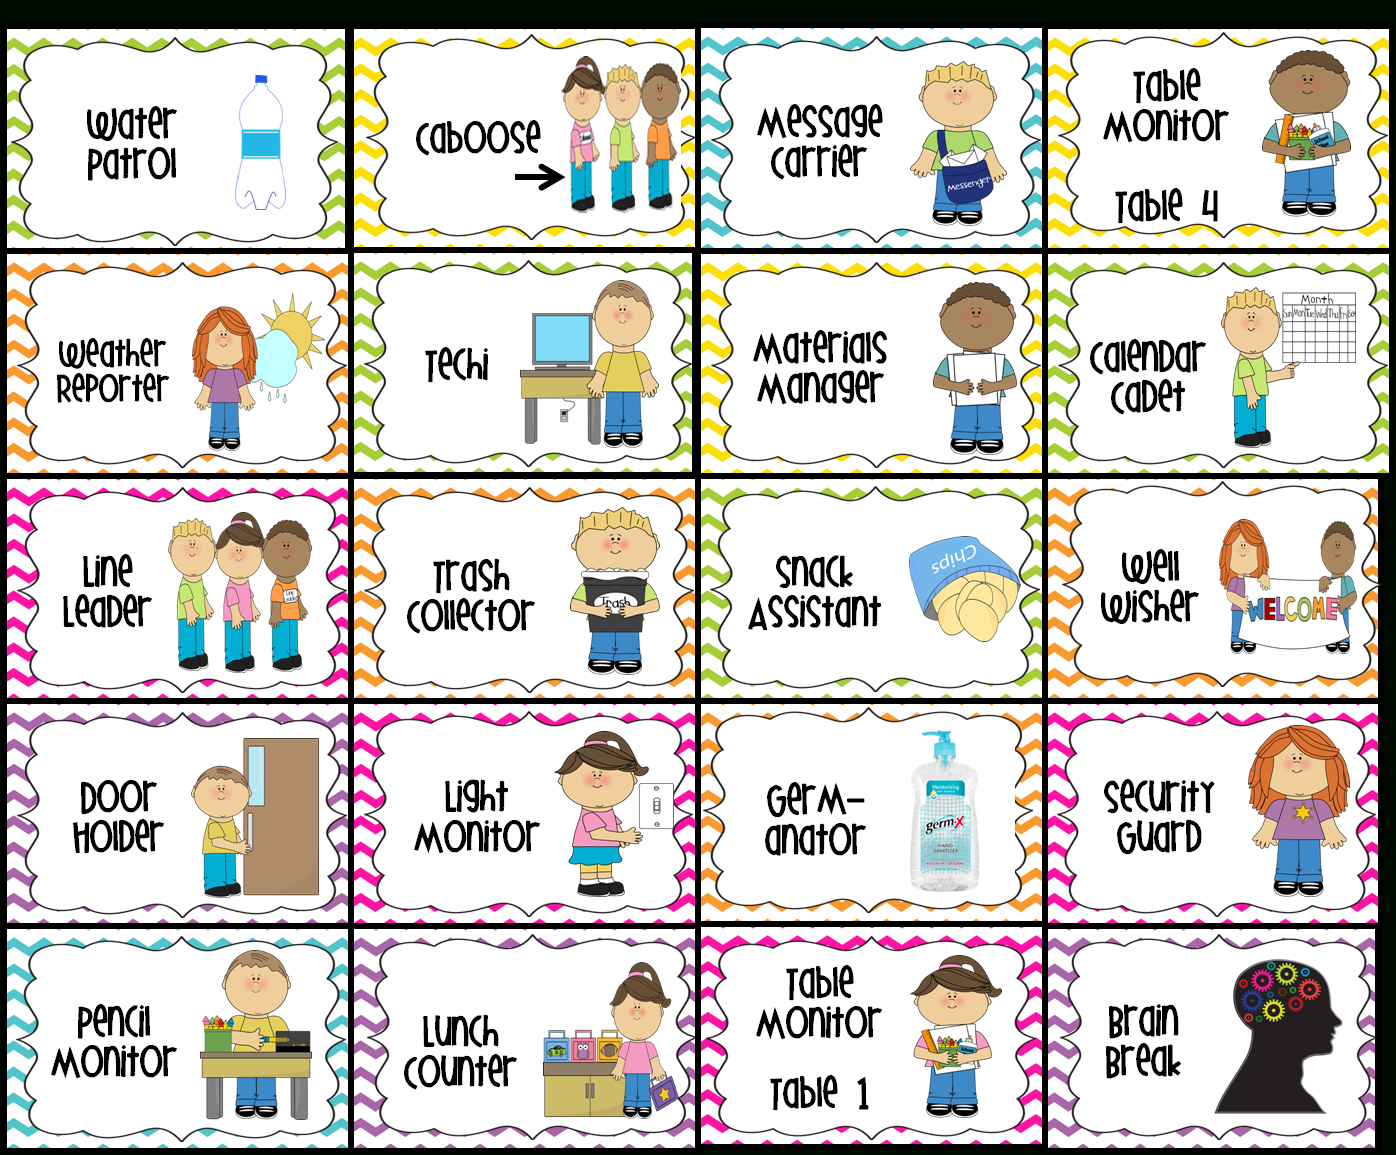 Classroom Jobs Printable | Water Patrol (2), Caboose, Message - Preschool Classroom Helper Labels Free Printable